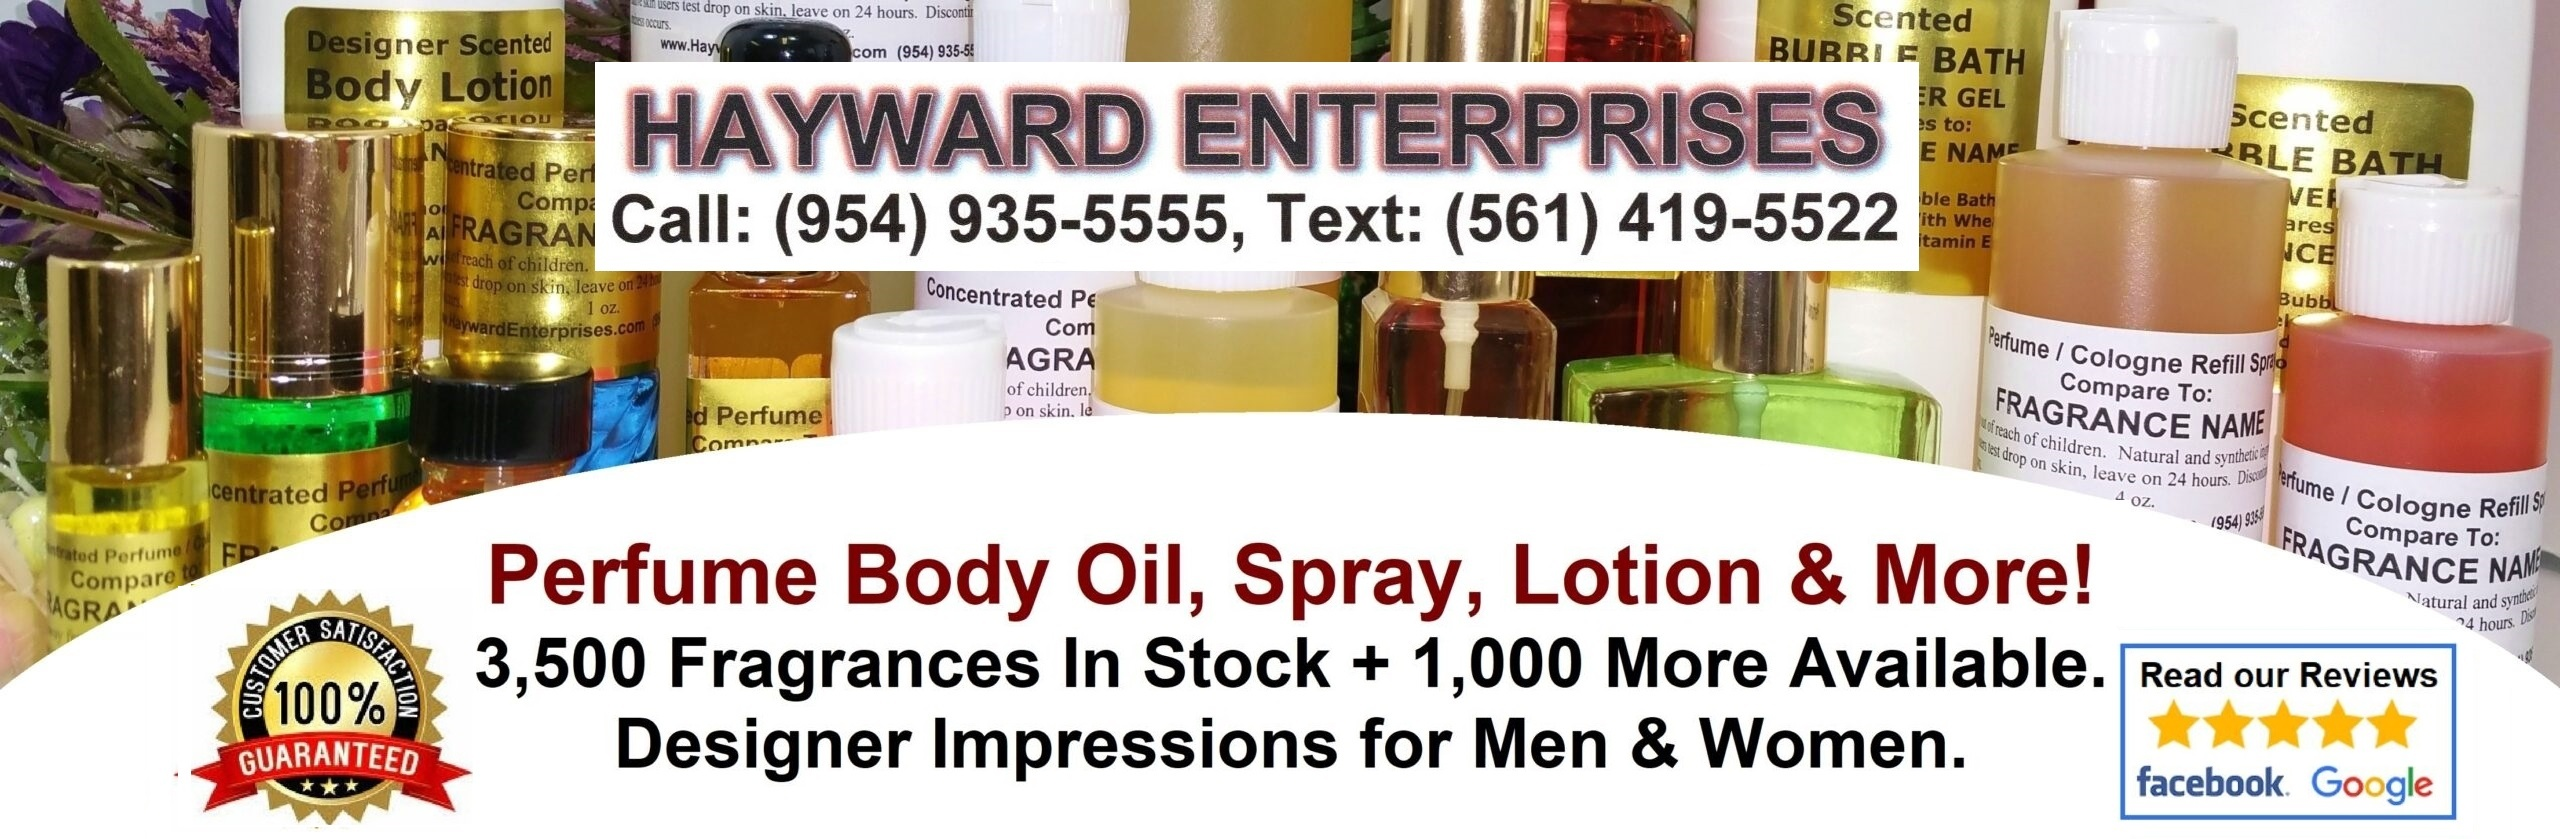 perfume oil, fragrance oil, body oil, perfume spray, scented lotion products group